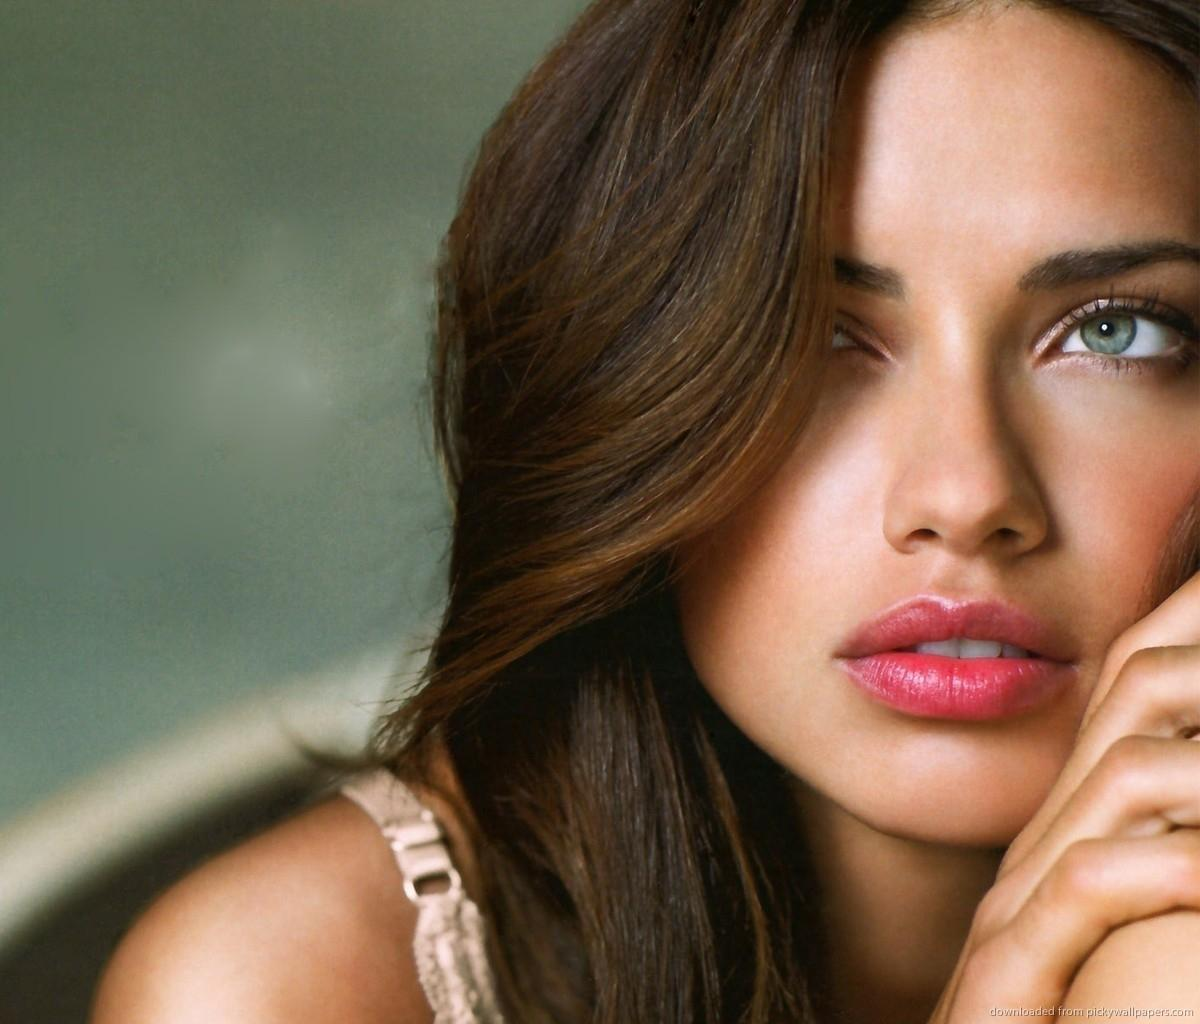 adriana lima beautiful image - photo #5